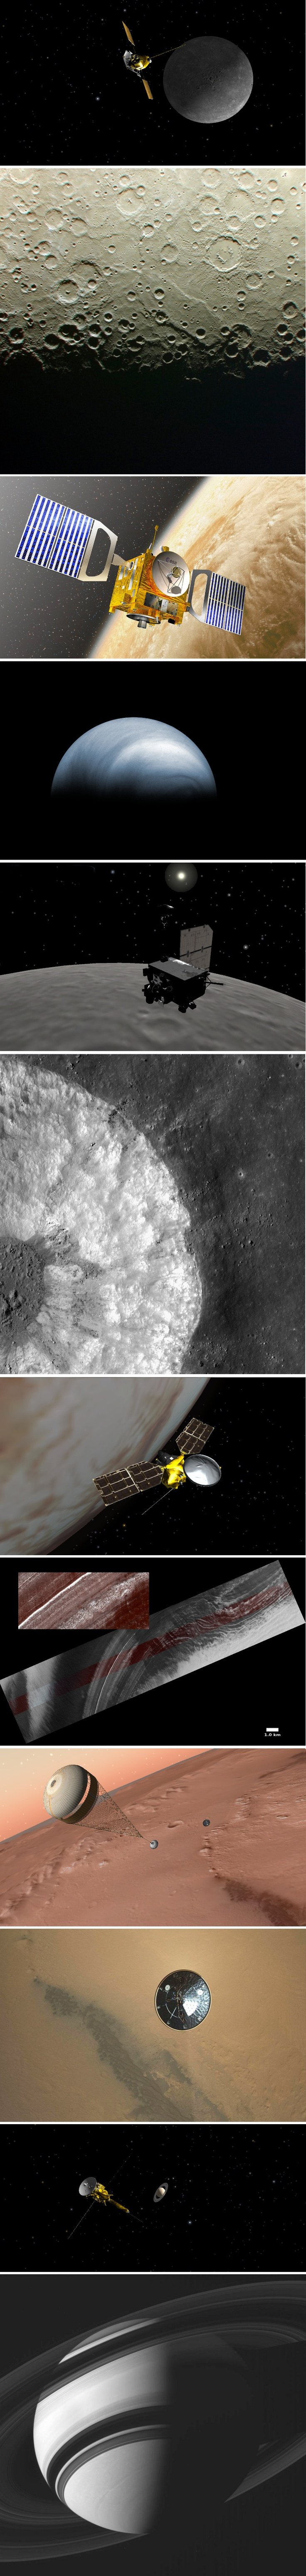 Six robotic spacecraft, each followed by a picture it took--all on the same day, August 5, 2012. The probes were rendered with NASA's 'Eyes on the Solar System' simulator. The photos are real.